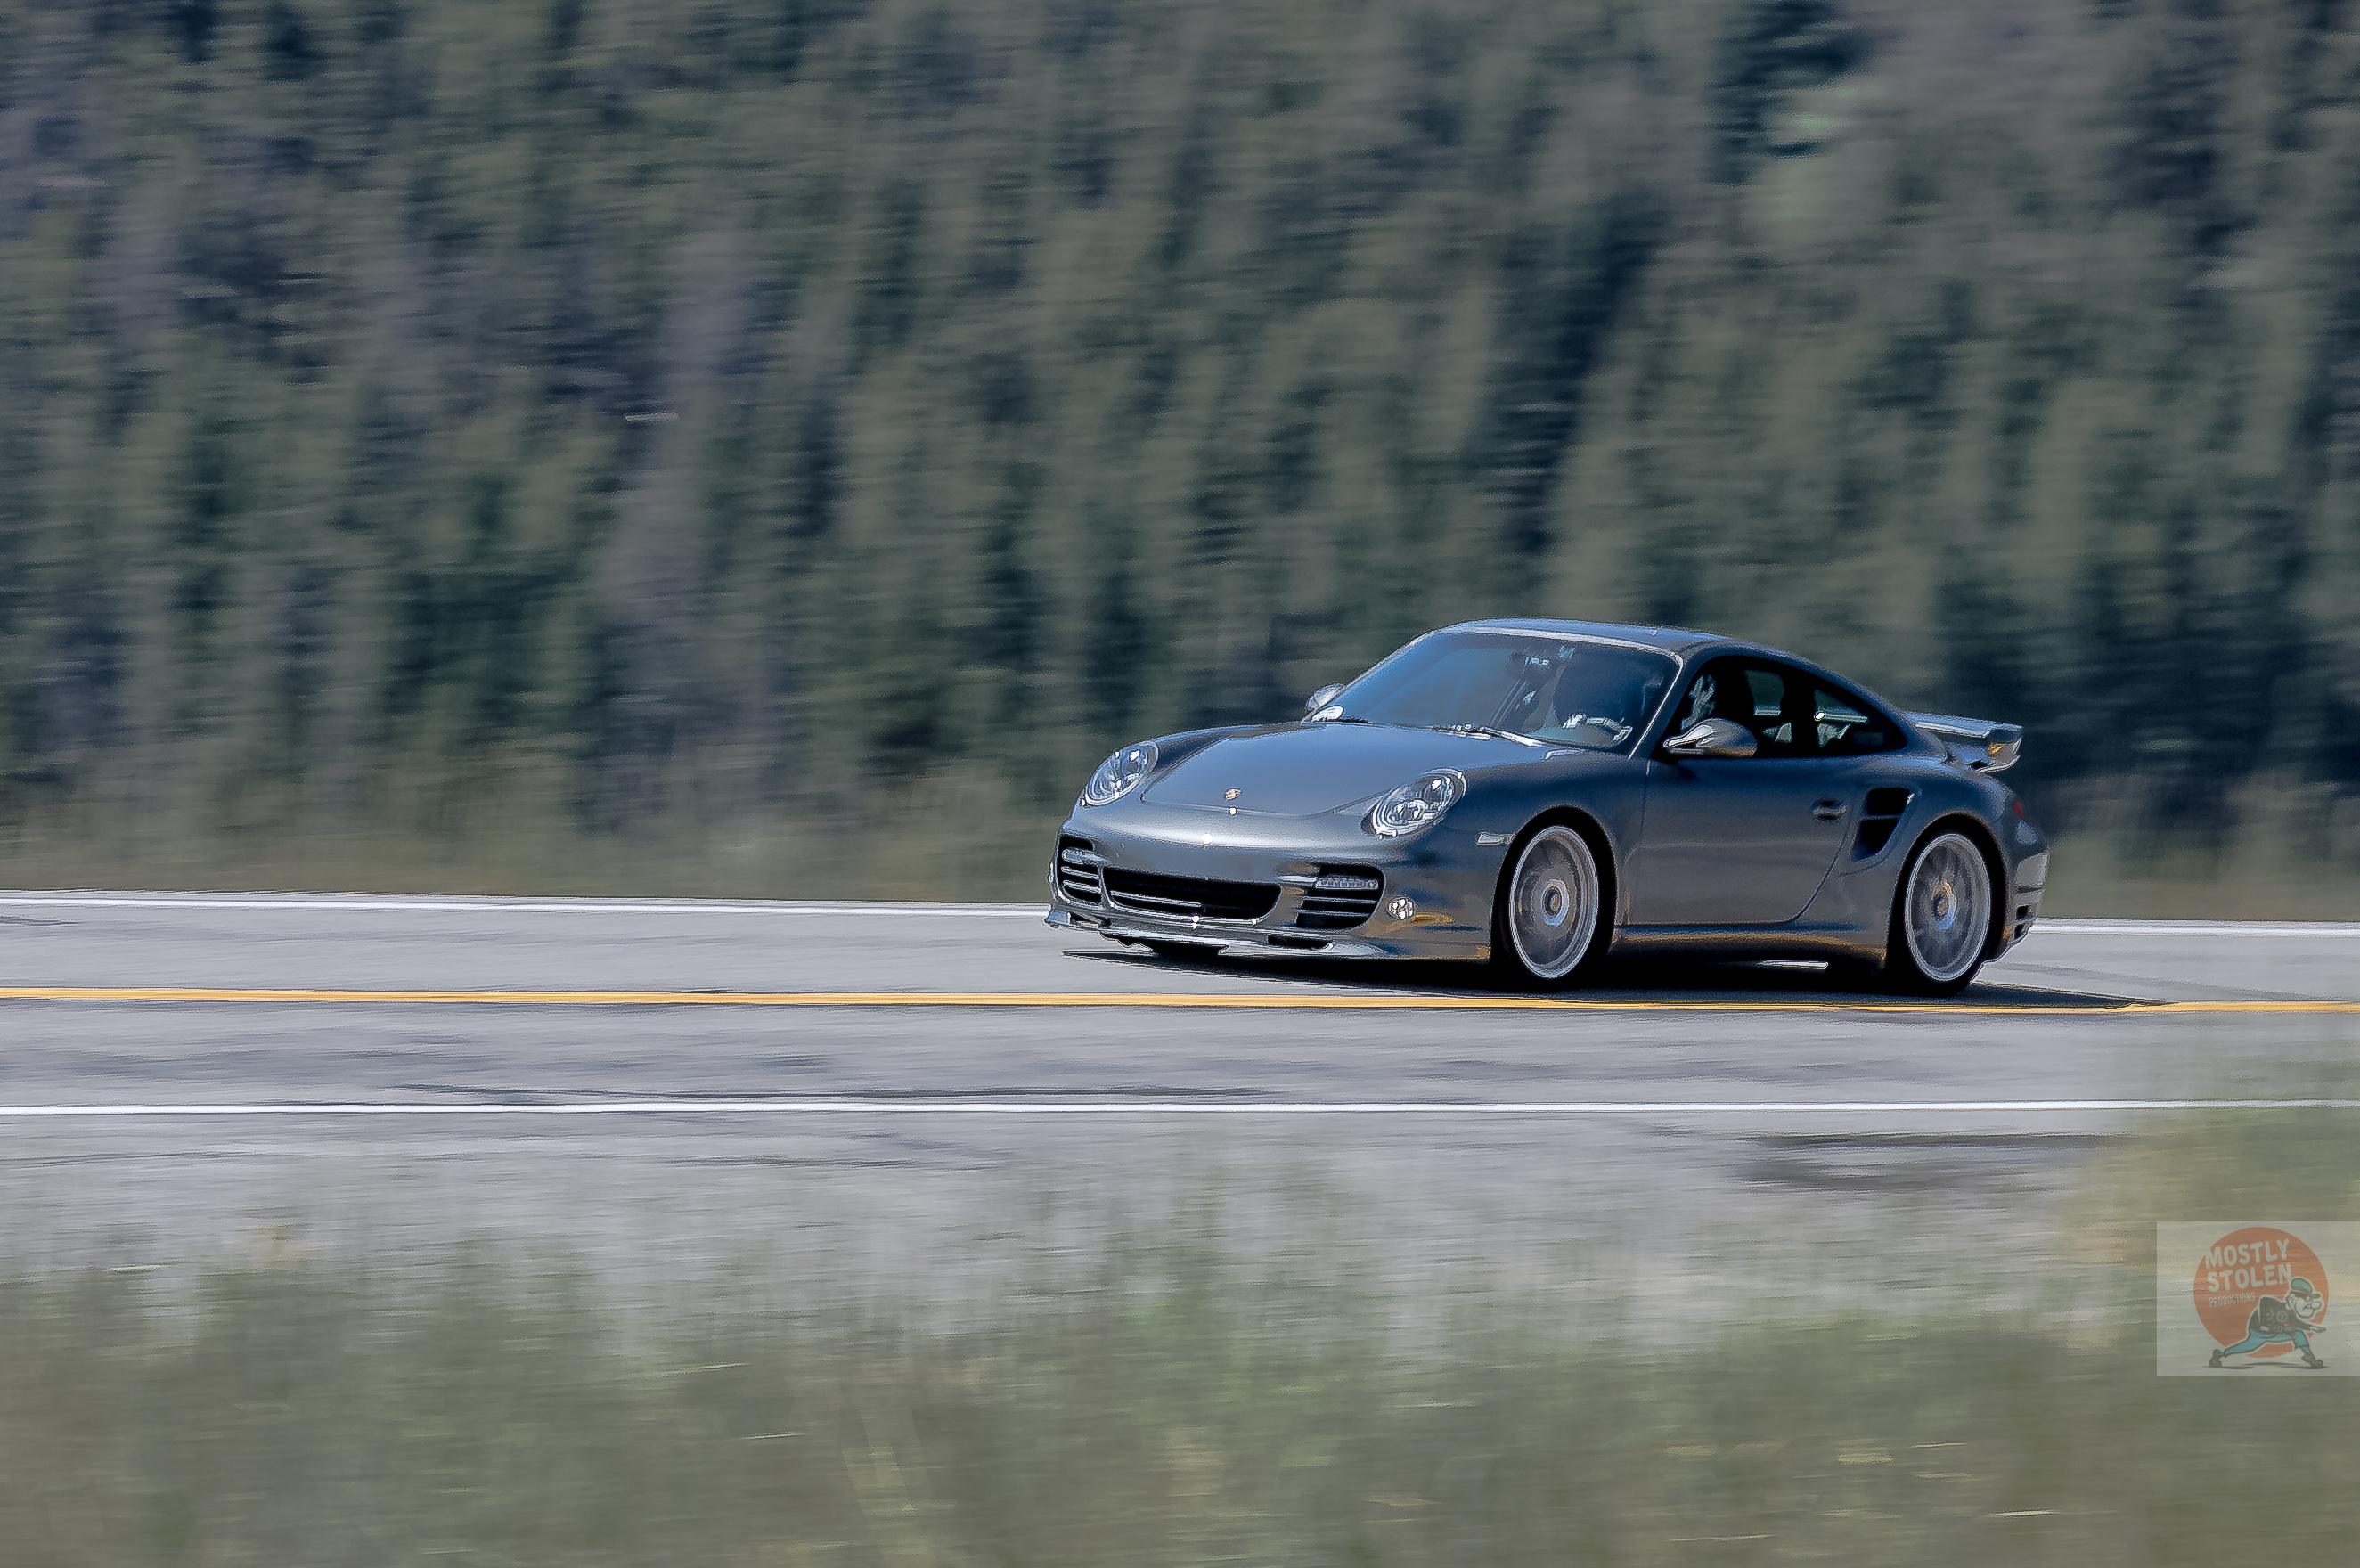 911 Turbo blur-8868-David Concannon